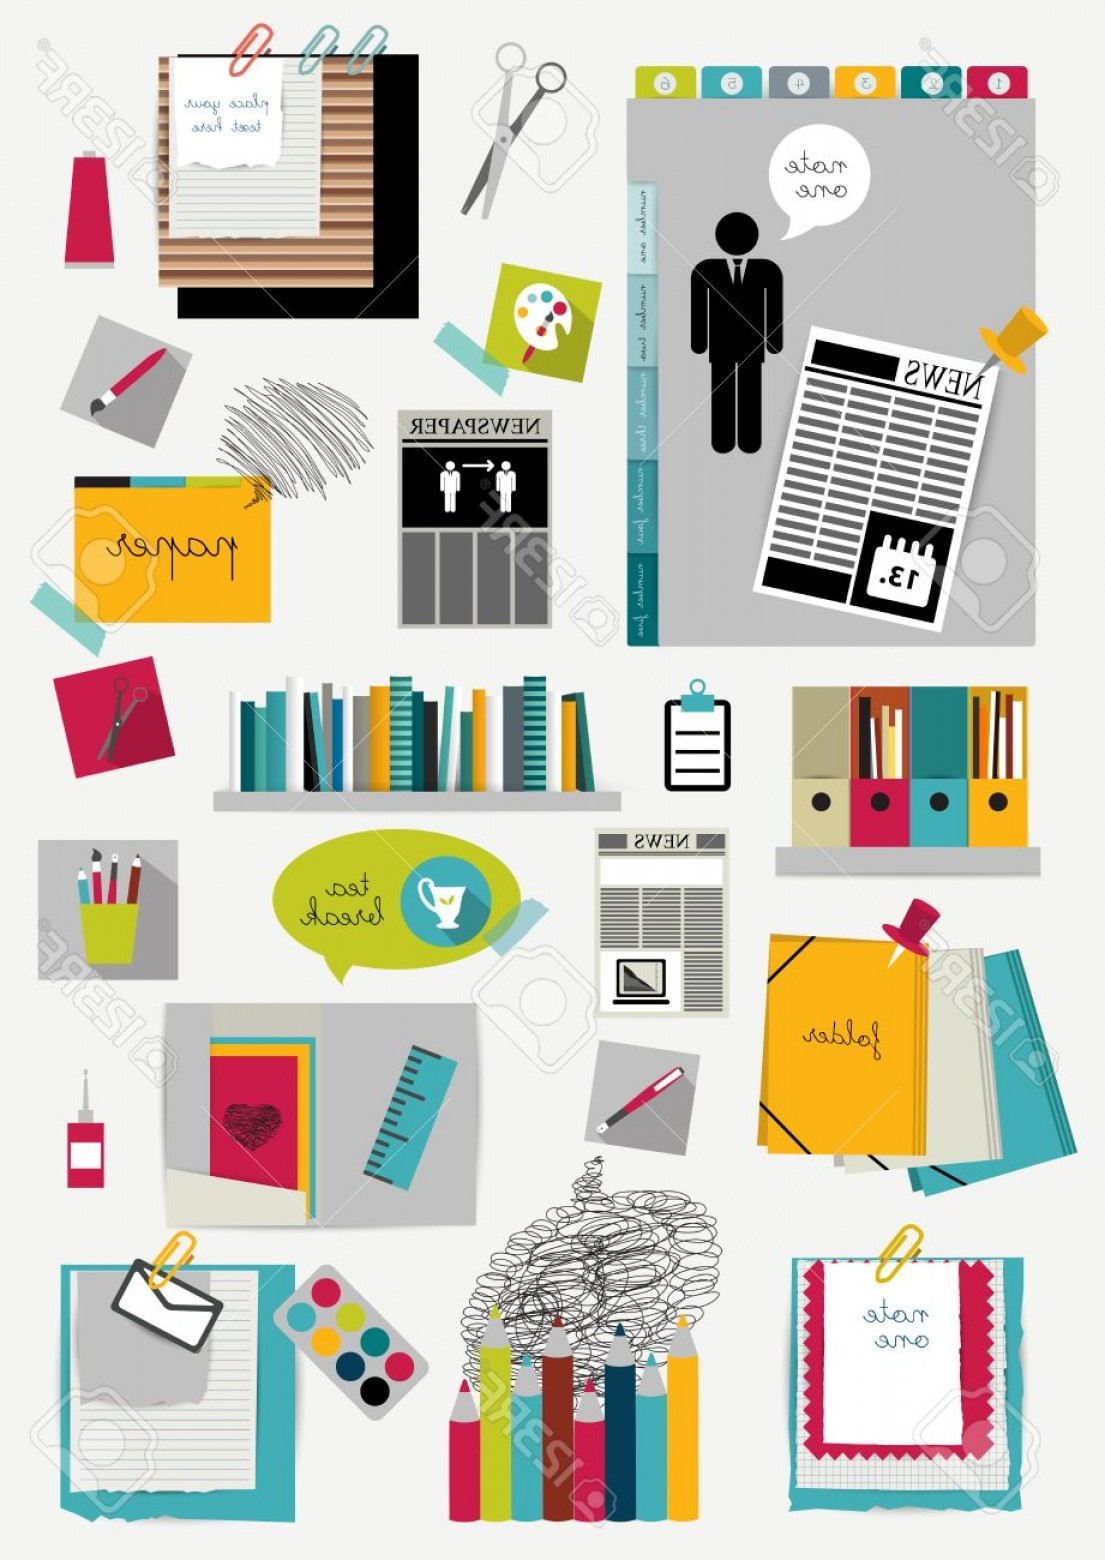 Folder Tab Vectors: Photostock Vector Work Office Web Layout Colorful Graphic Template Folder Sticker Tab Data Bubbles Set Vector Backgrou